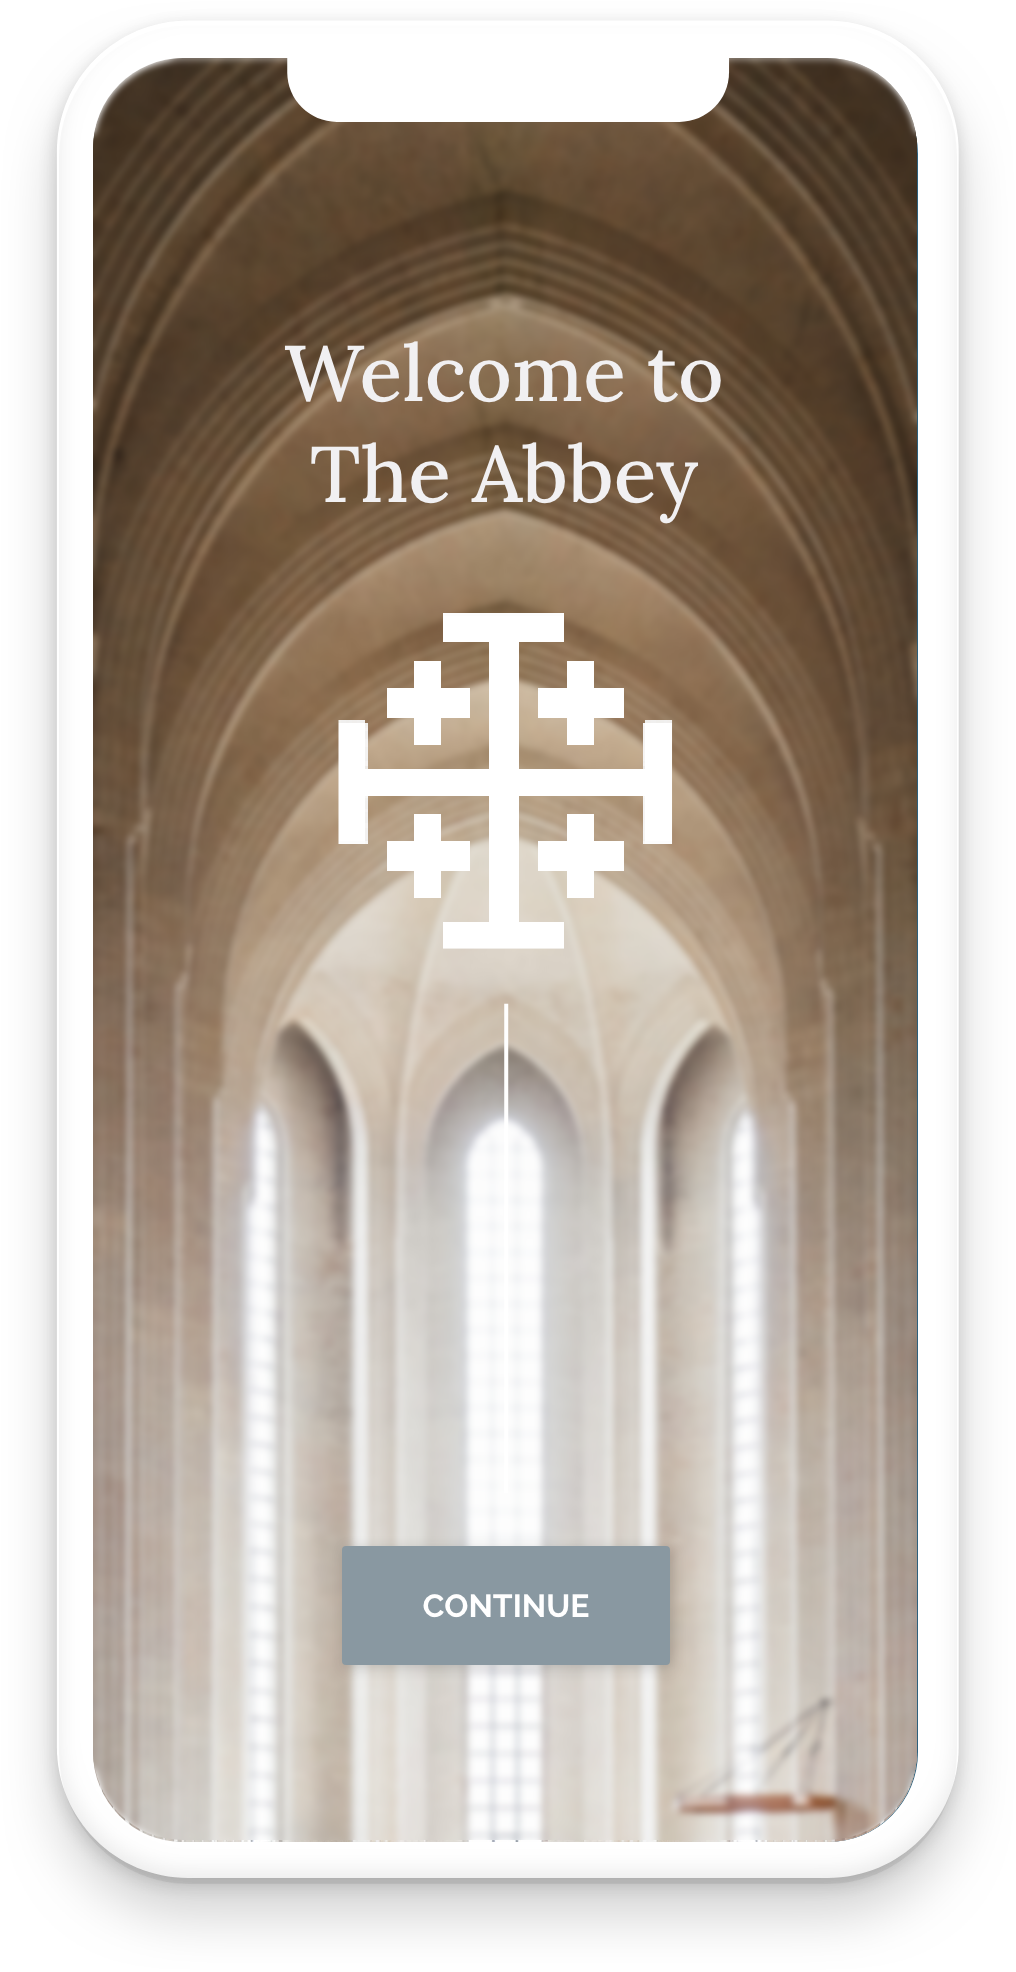 abbey-iphone-welcome-1